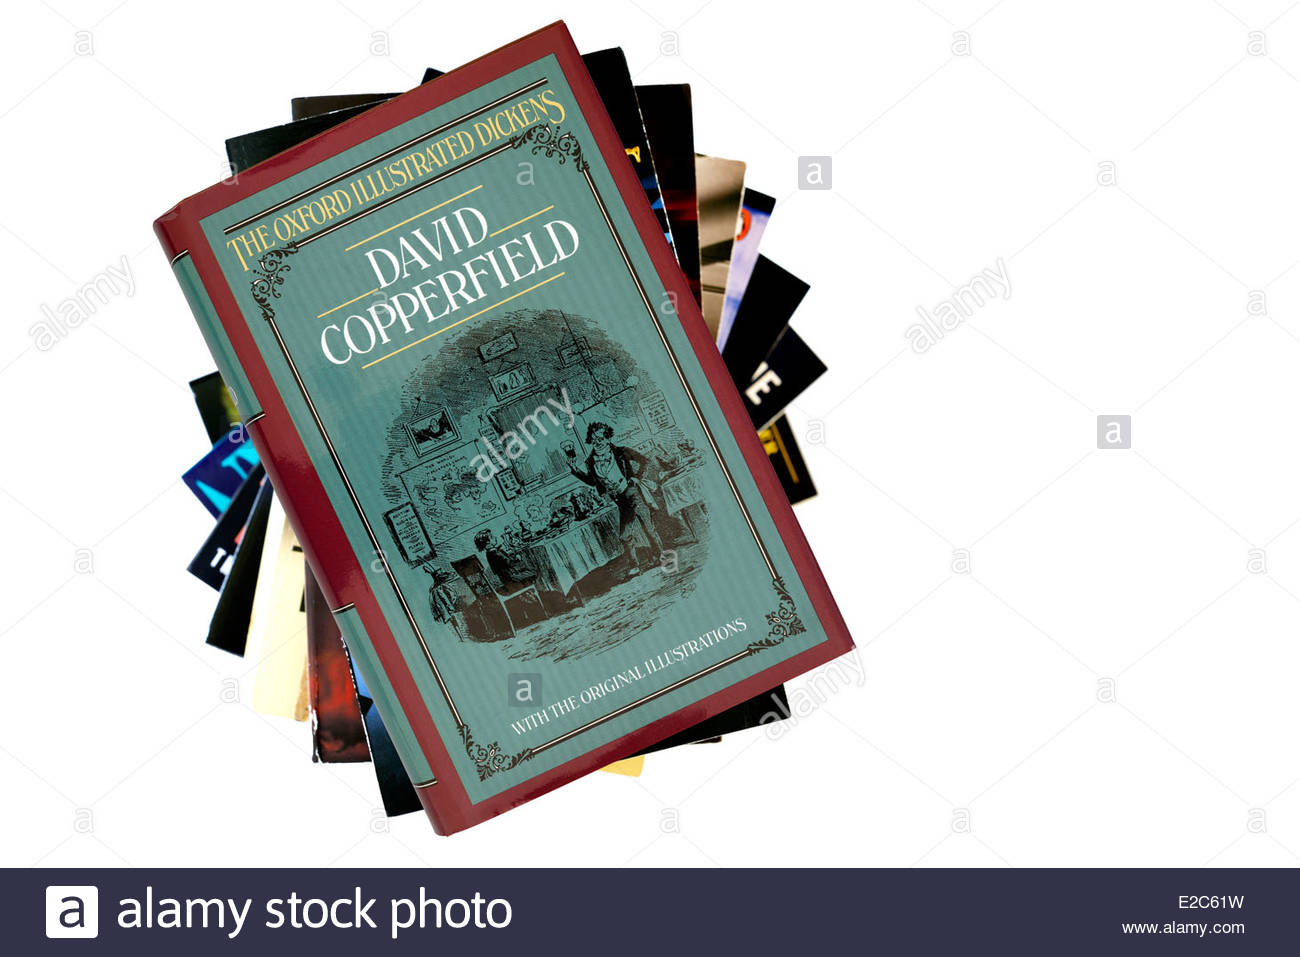 Charles Dickens novel, David Copperfield, book title, stacked used books, England - Stock Image